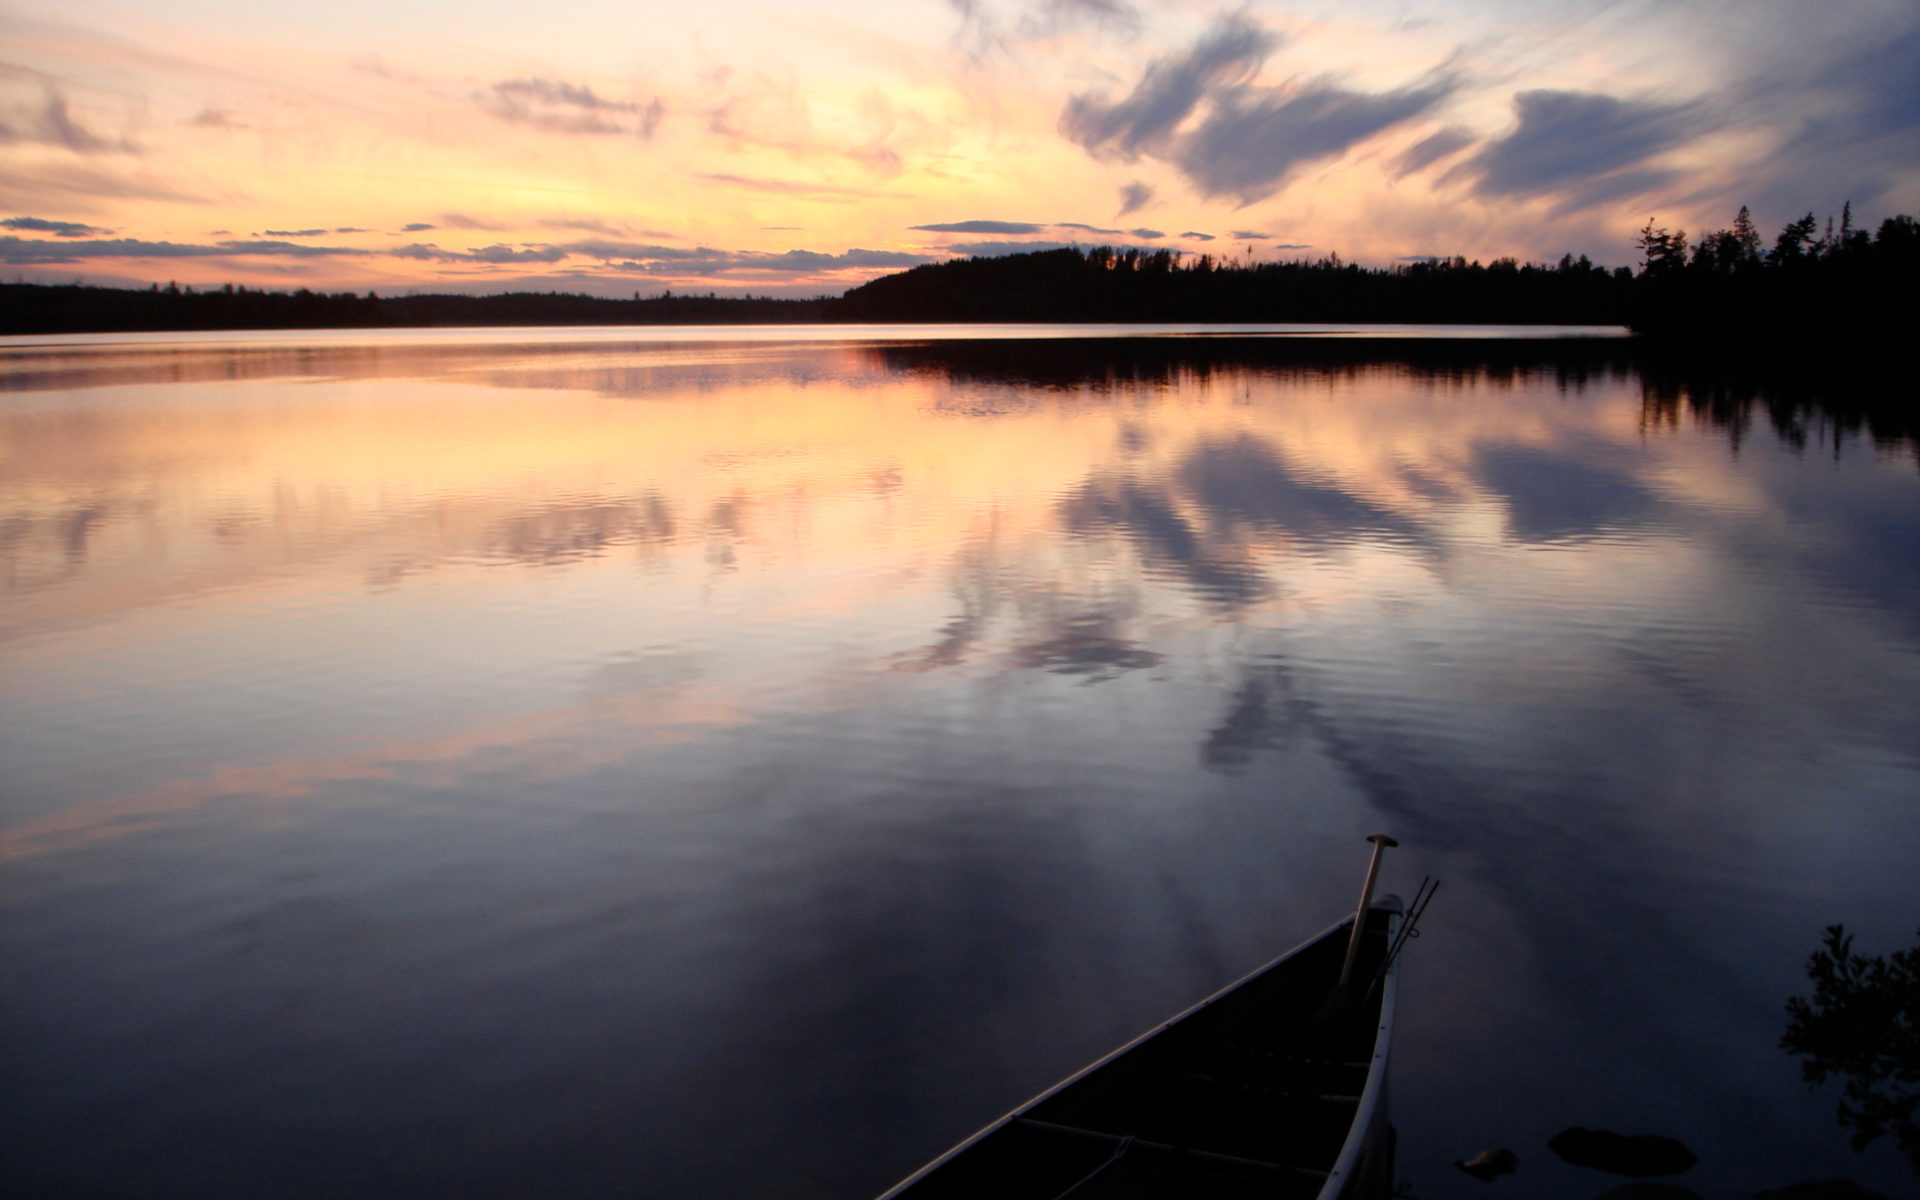 Sunset over a wooded lake with a canoe in the foreground